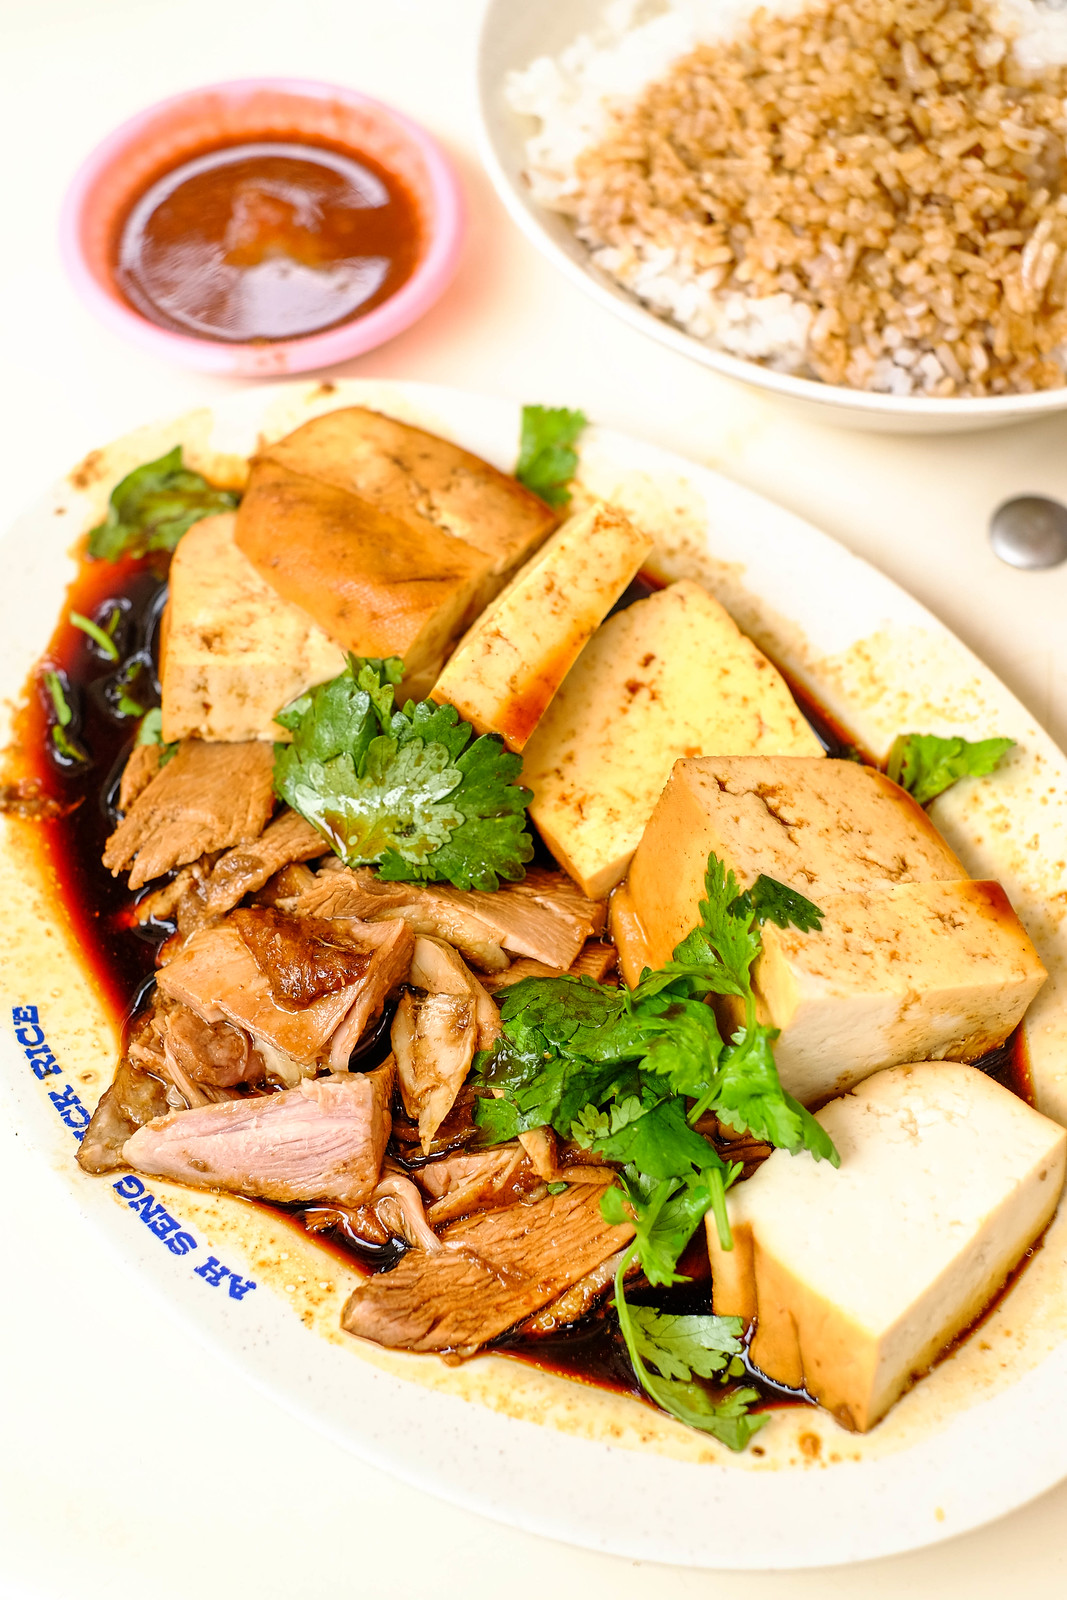 Serangoon Garden Market: Ah Seng Braised Duck Rice